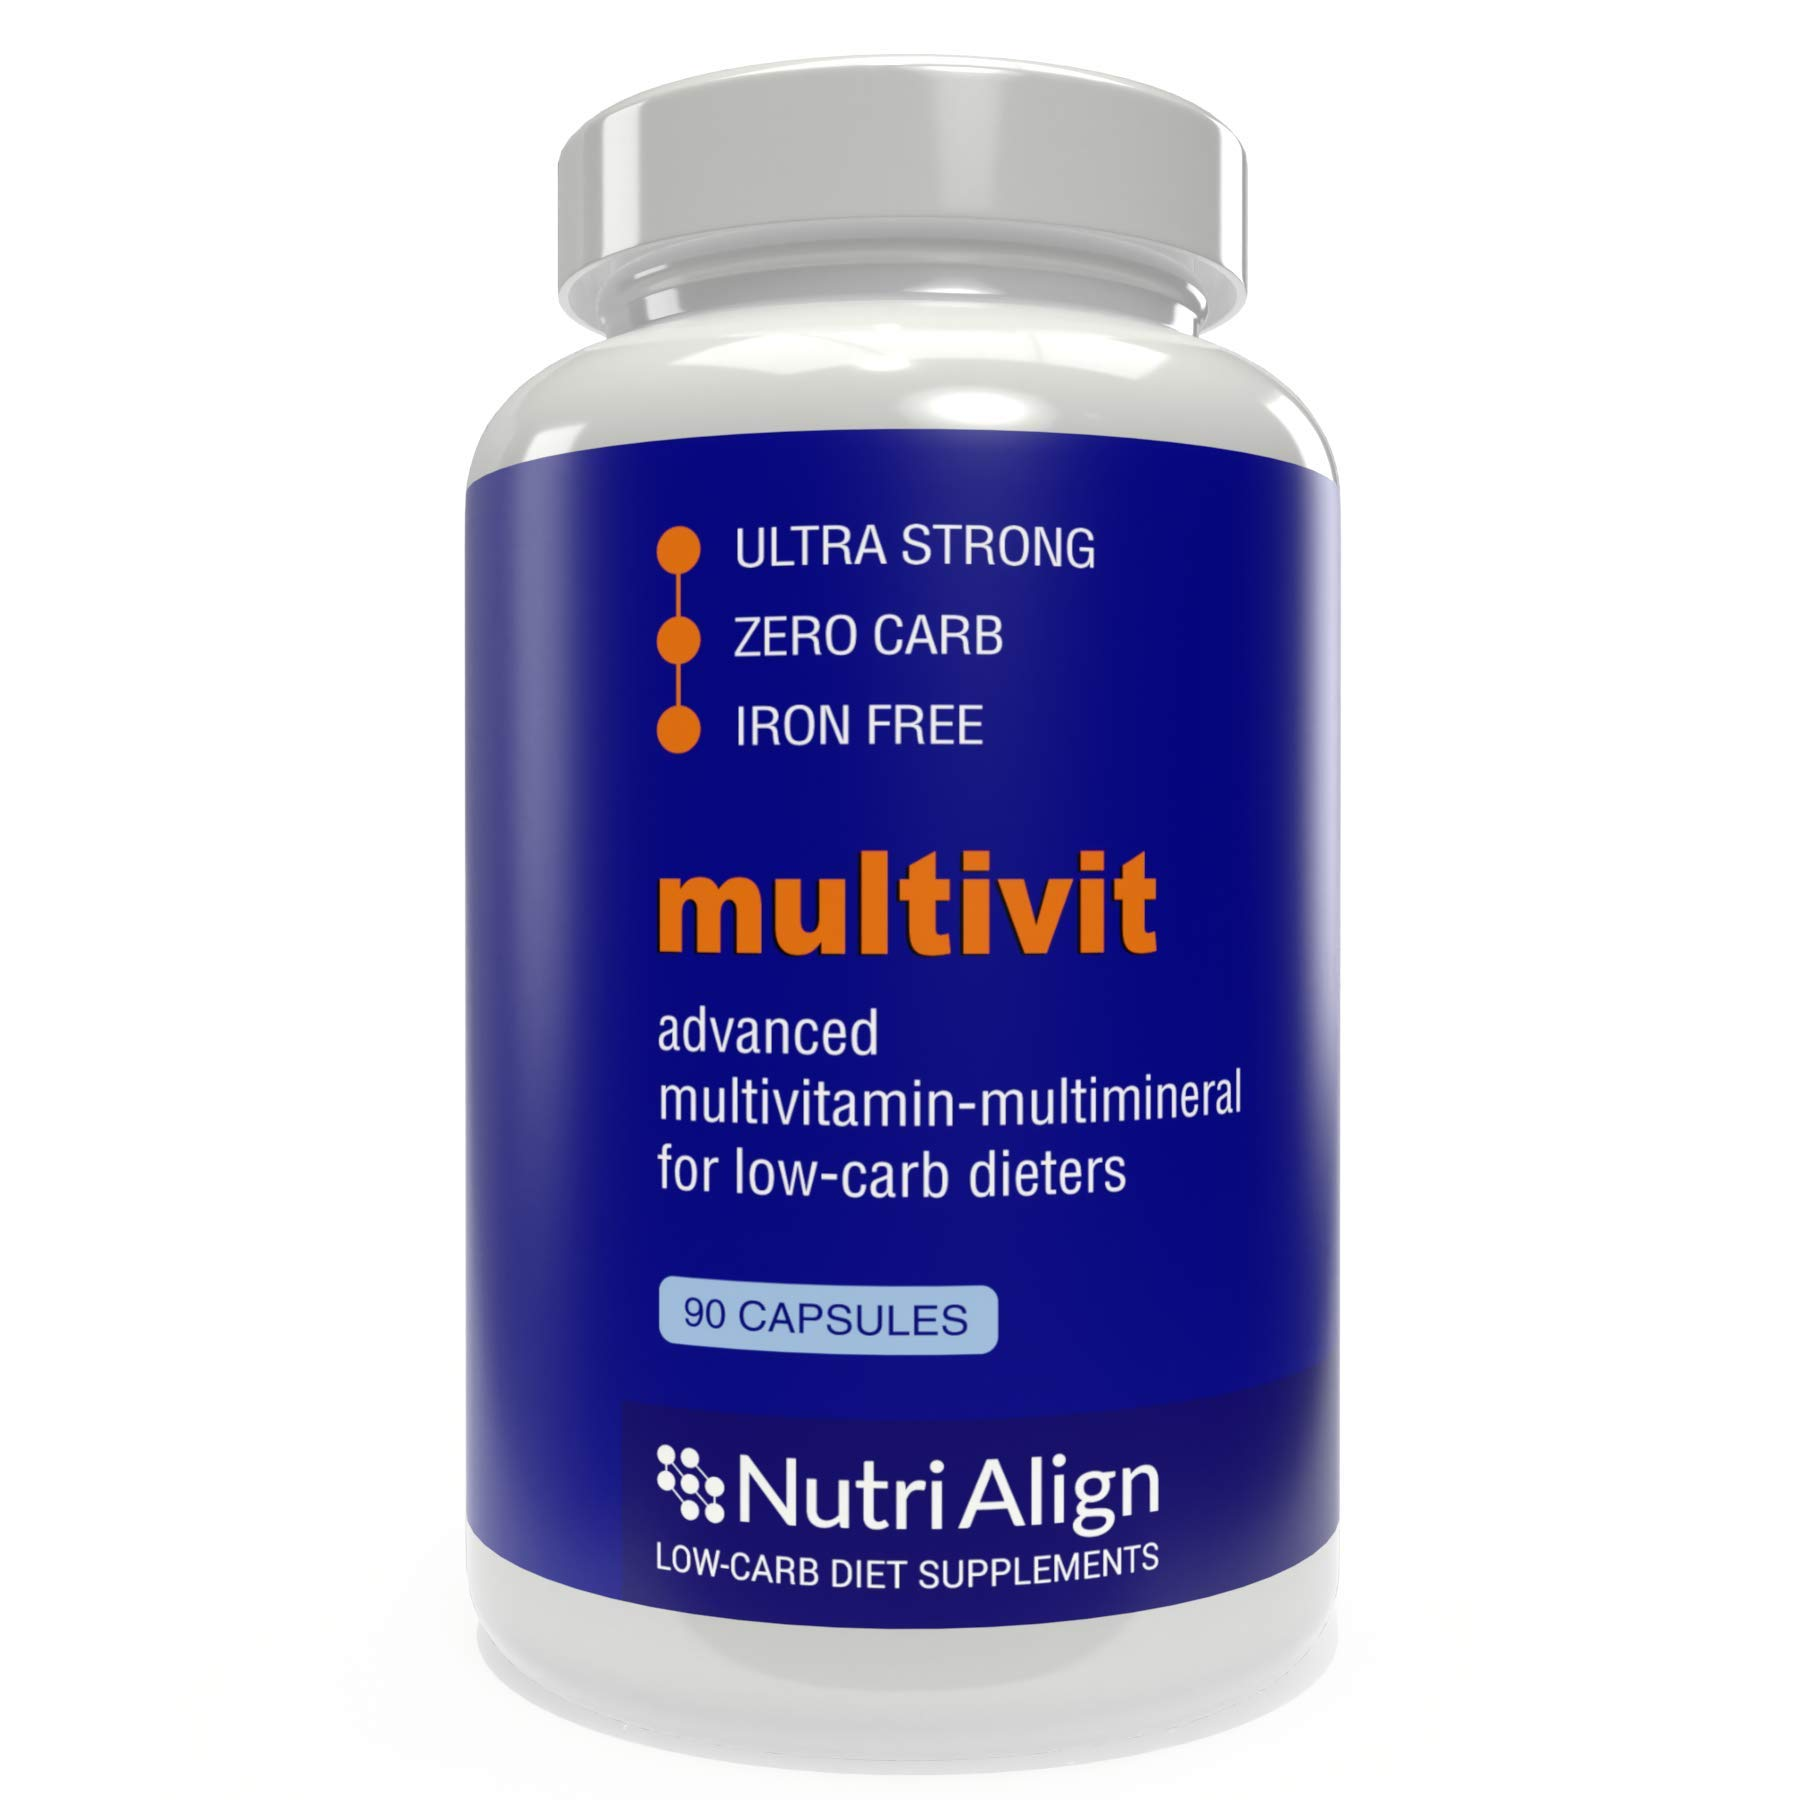 Nutri-Align Multivit: Multivitamins for Keto, Atkins and Similar Low-Carb Diets. Extra-Strong, Iron-Free, Sugar-Free, Zero-Carb. 90 Capsules. by Nutri-Align